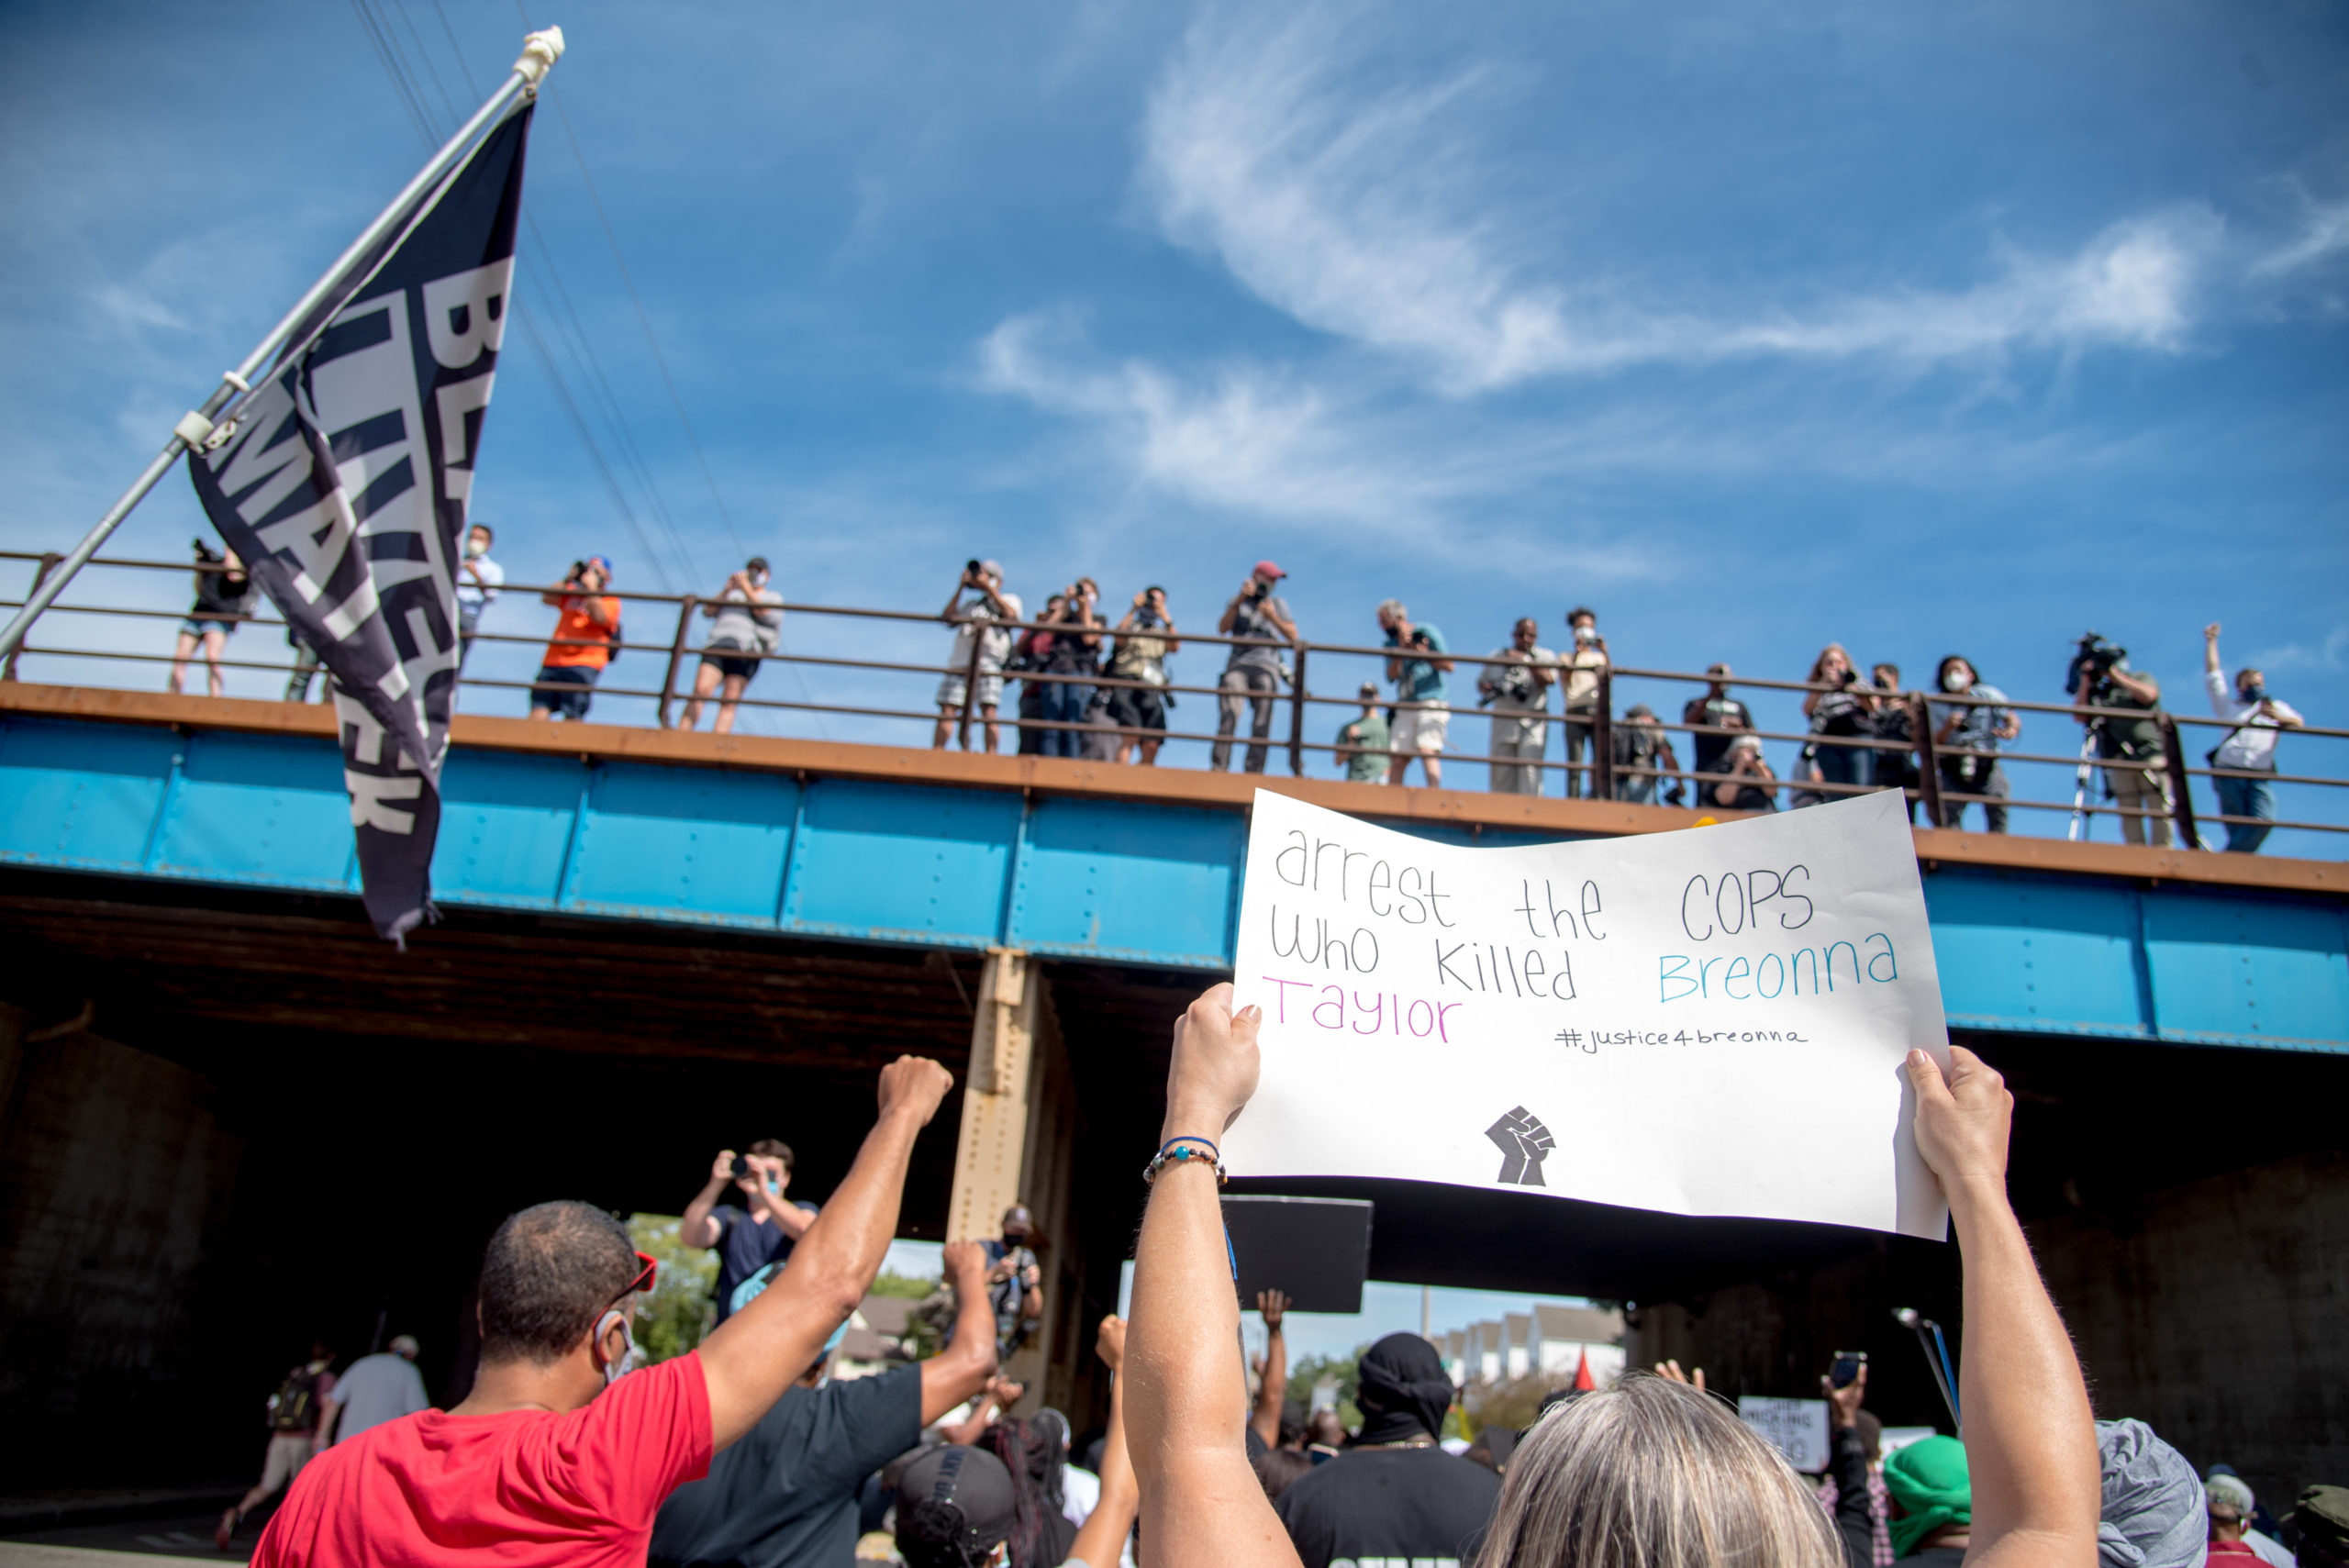 Photographers and press look down from a railroad bridge at a march in Kenosha, Wis. on Aug. 29, 2020, demanding justice for Jacob Blake, a Black man shot in the back seven times by Kenosha police.